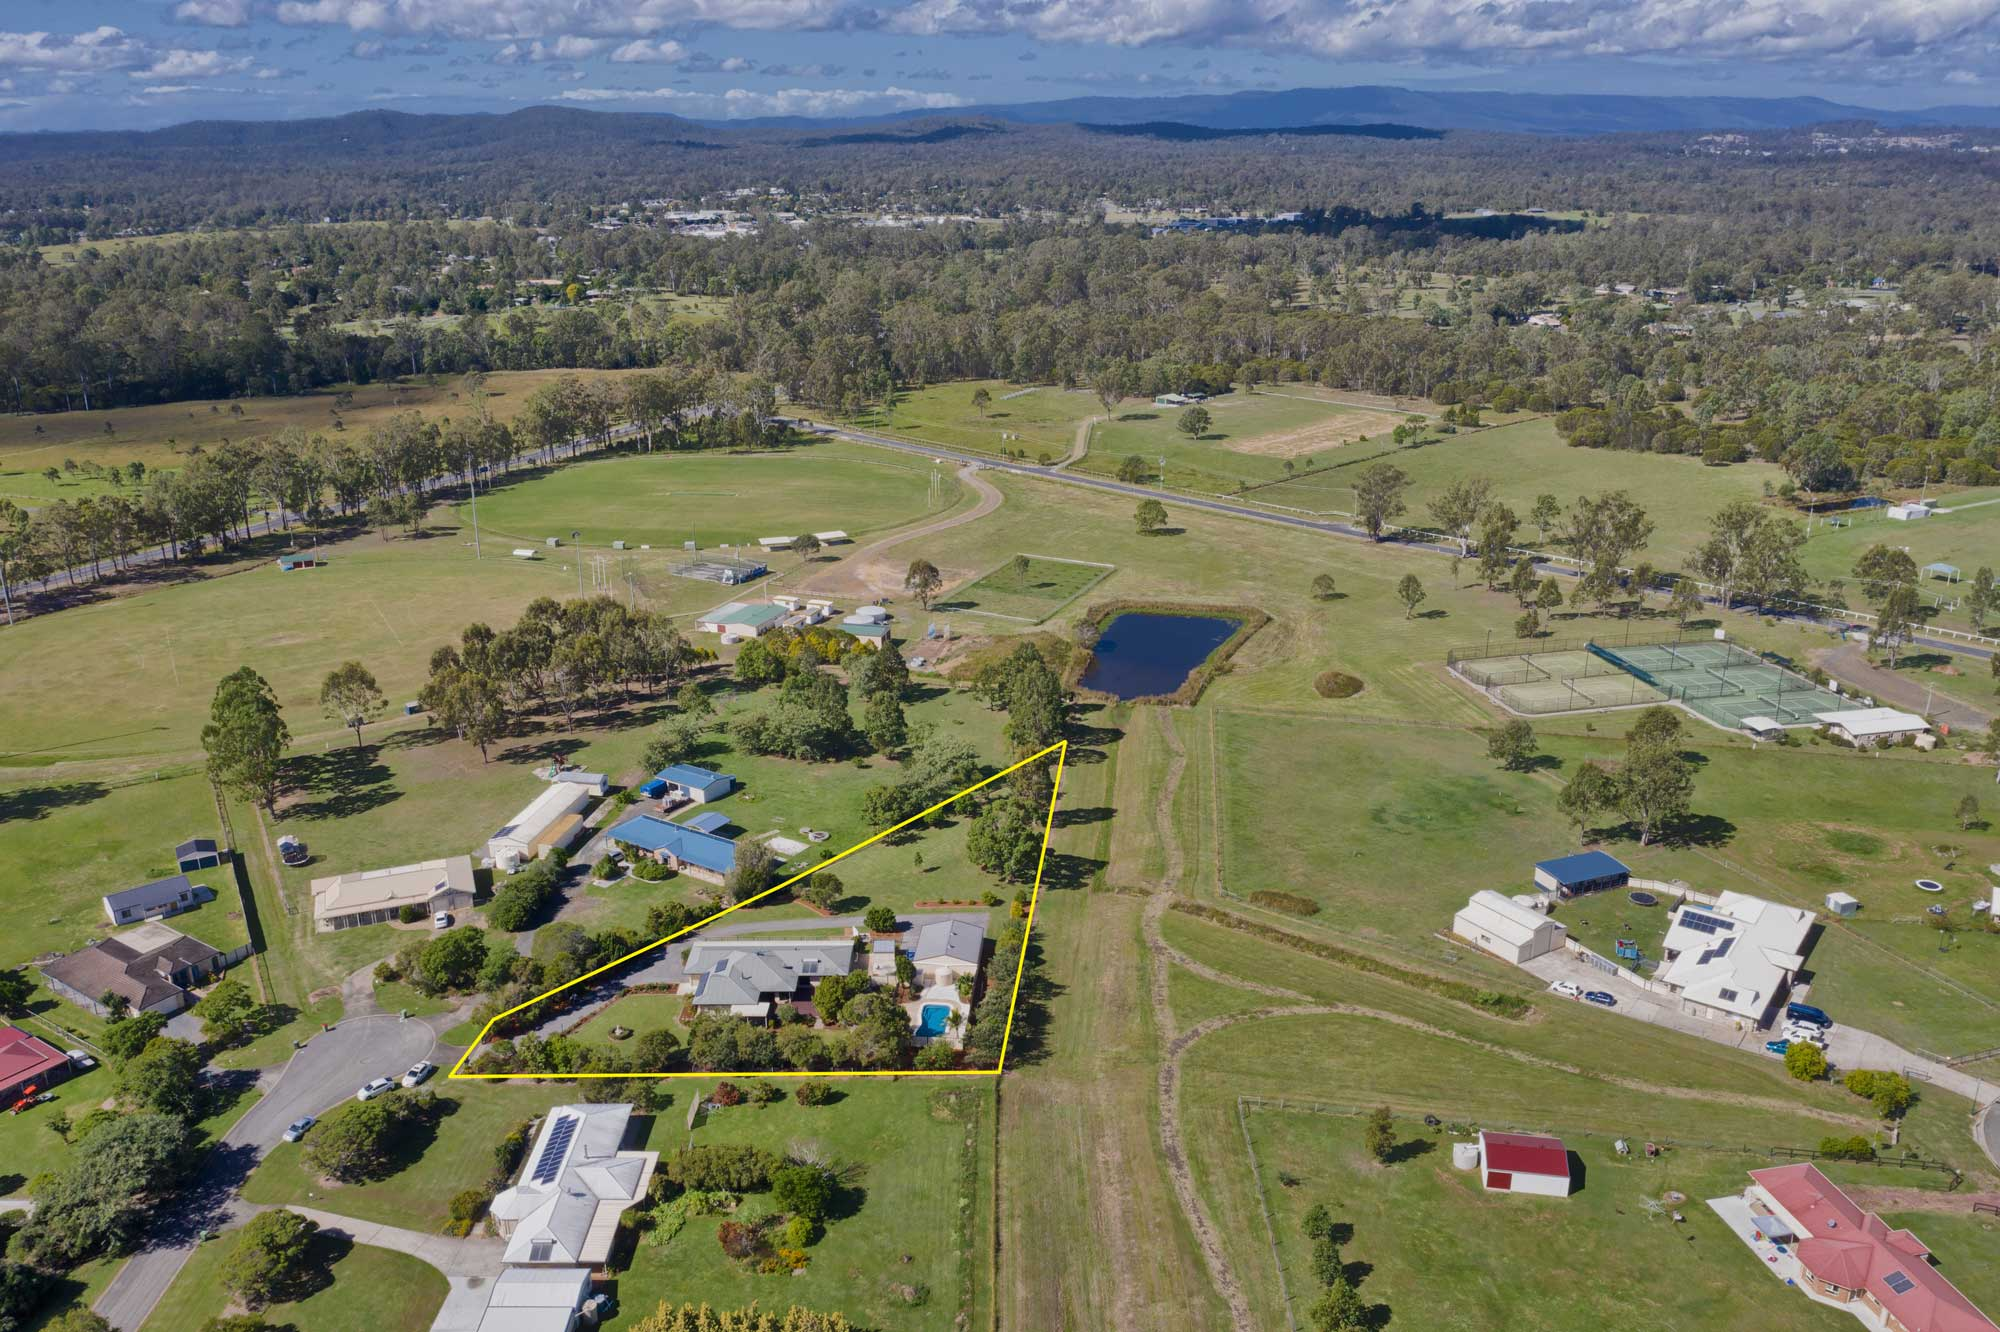 Drone photography at 33 Shergar Court Jimboomba for a real estate listing